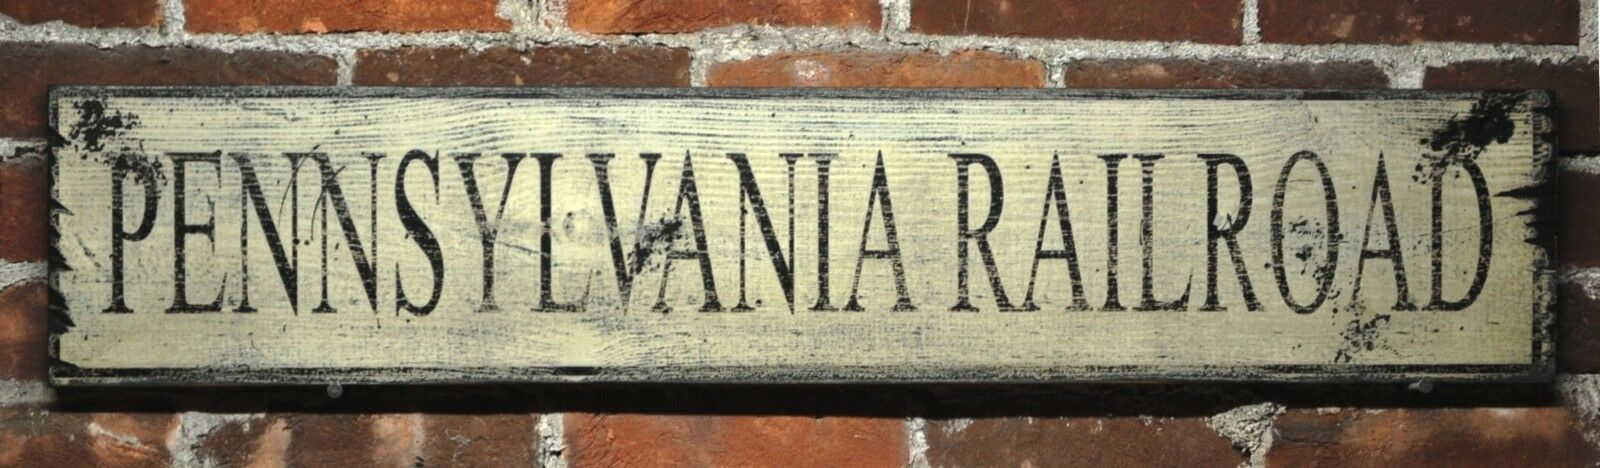 Personalized State Railroad Wood Sign - Rustic Hand Made Vintage Wooden Sign